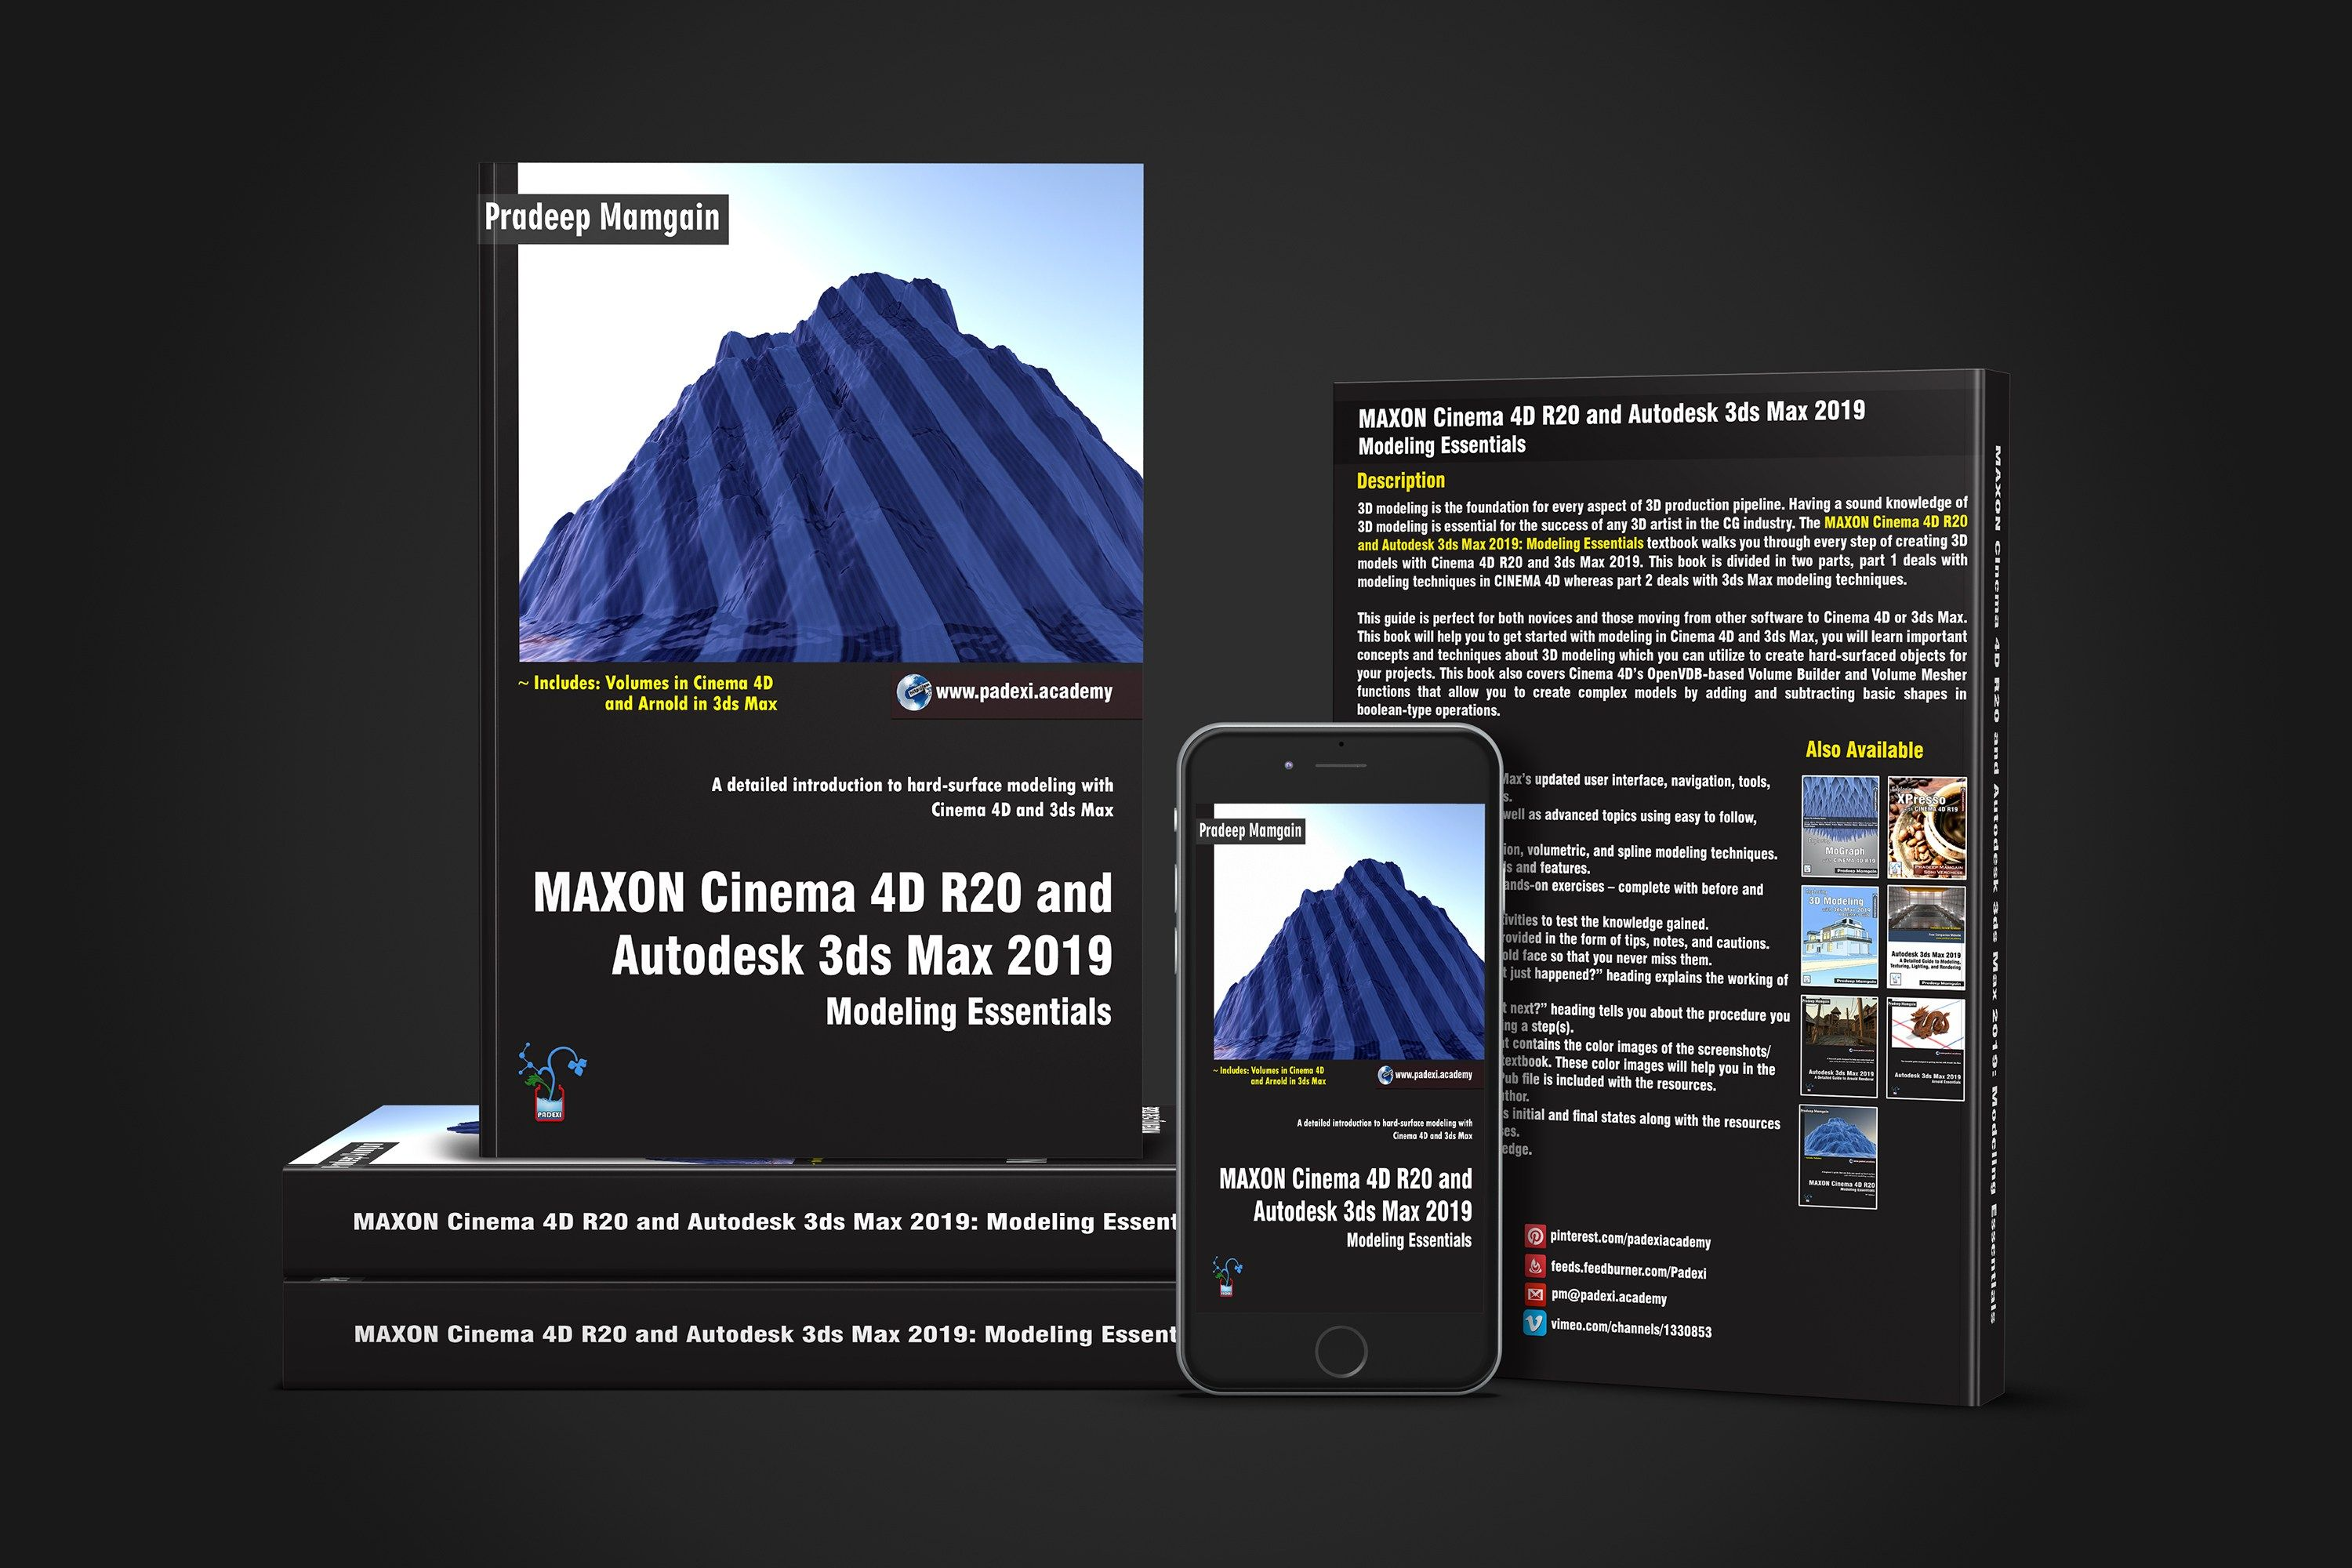 4D Max Cinema book - cinema 4d r20 and autodesk 3ds max 2019: modeling